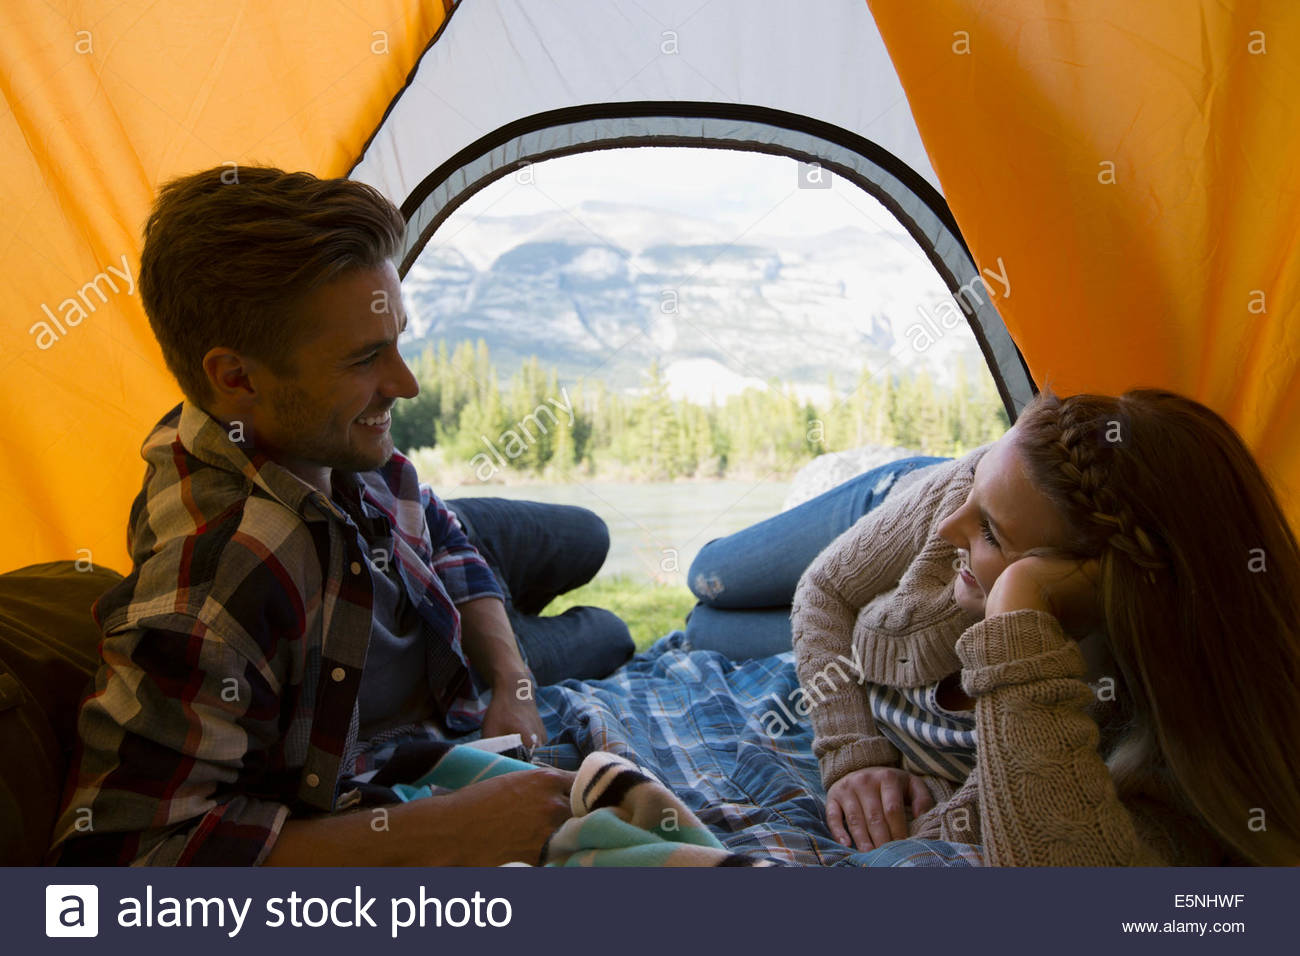 Couple laying in tent with mountain view - Stock Image